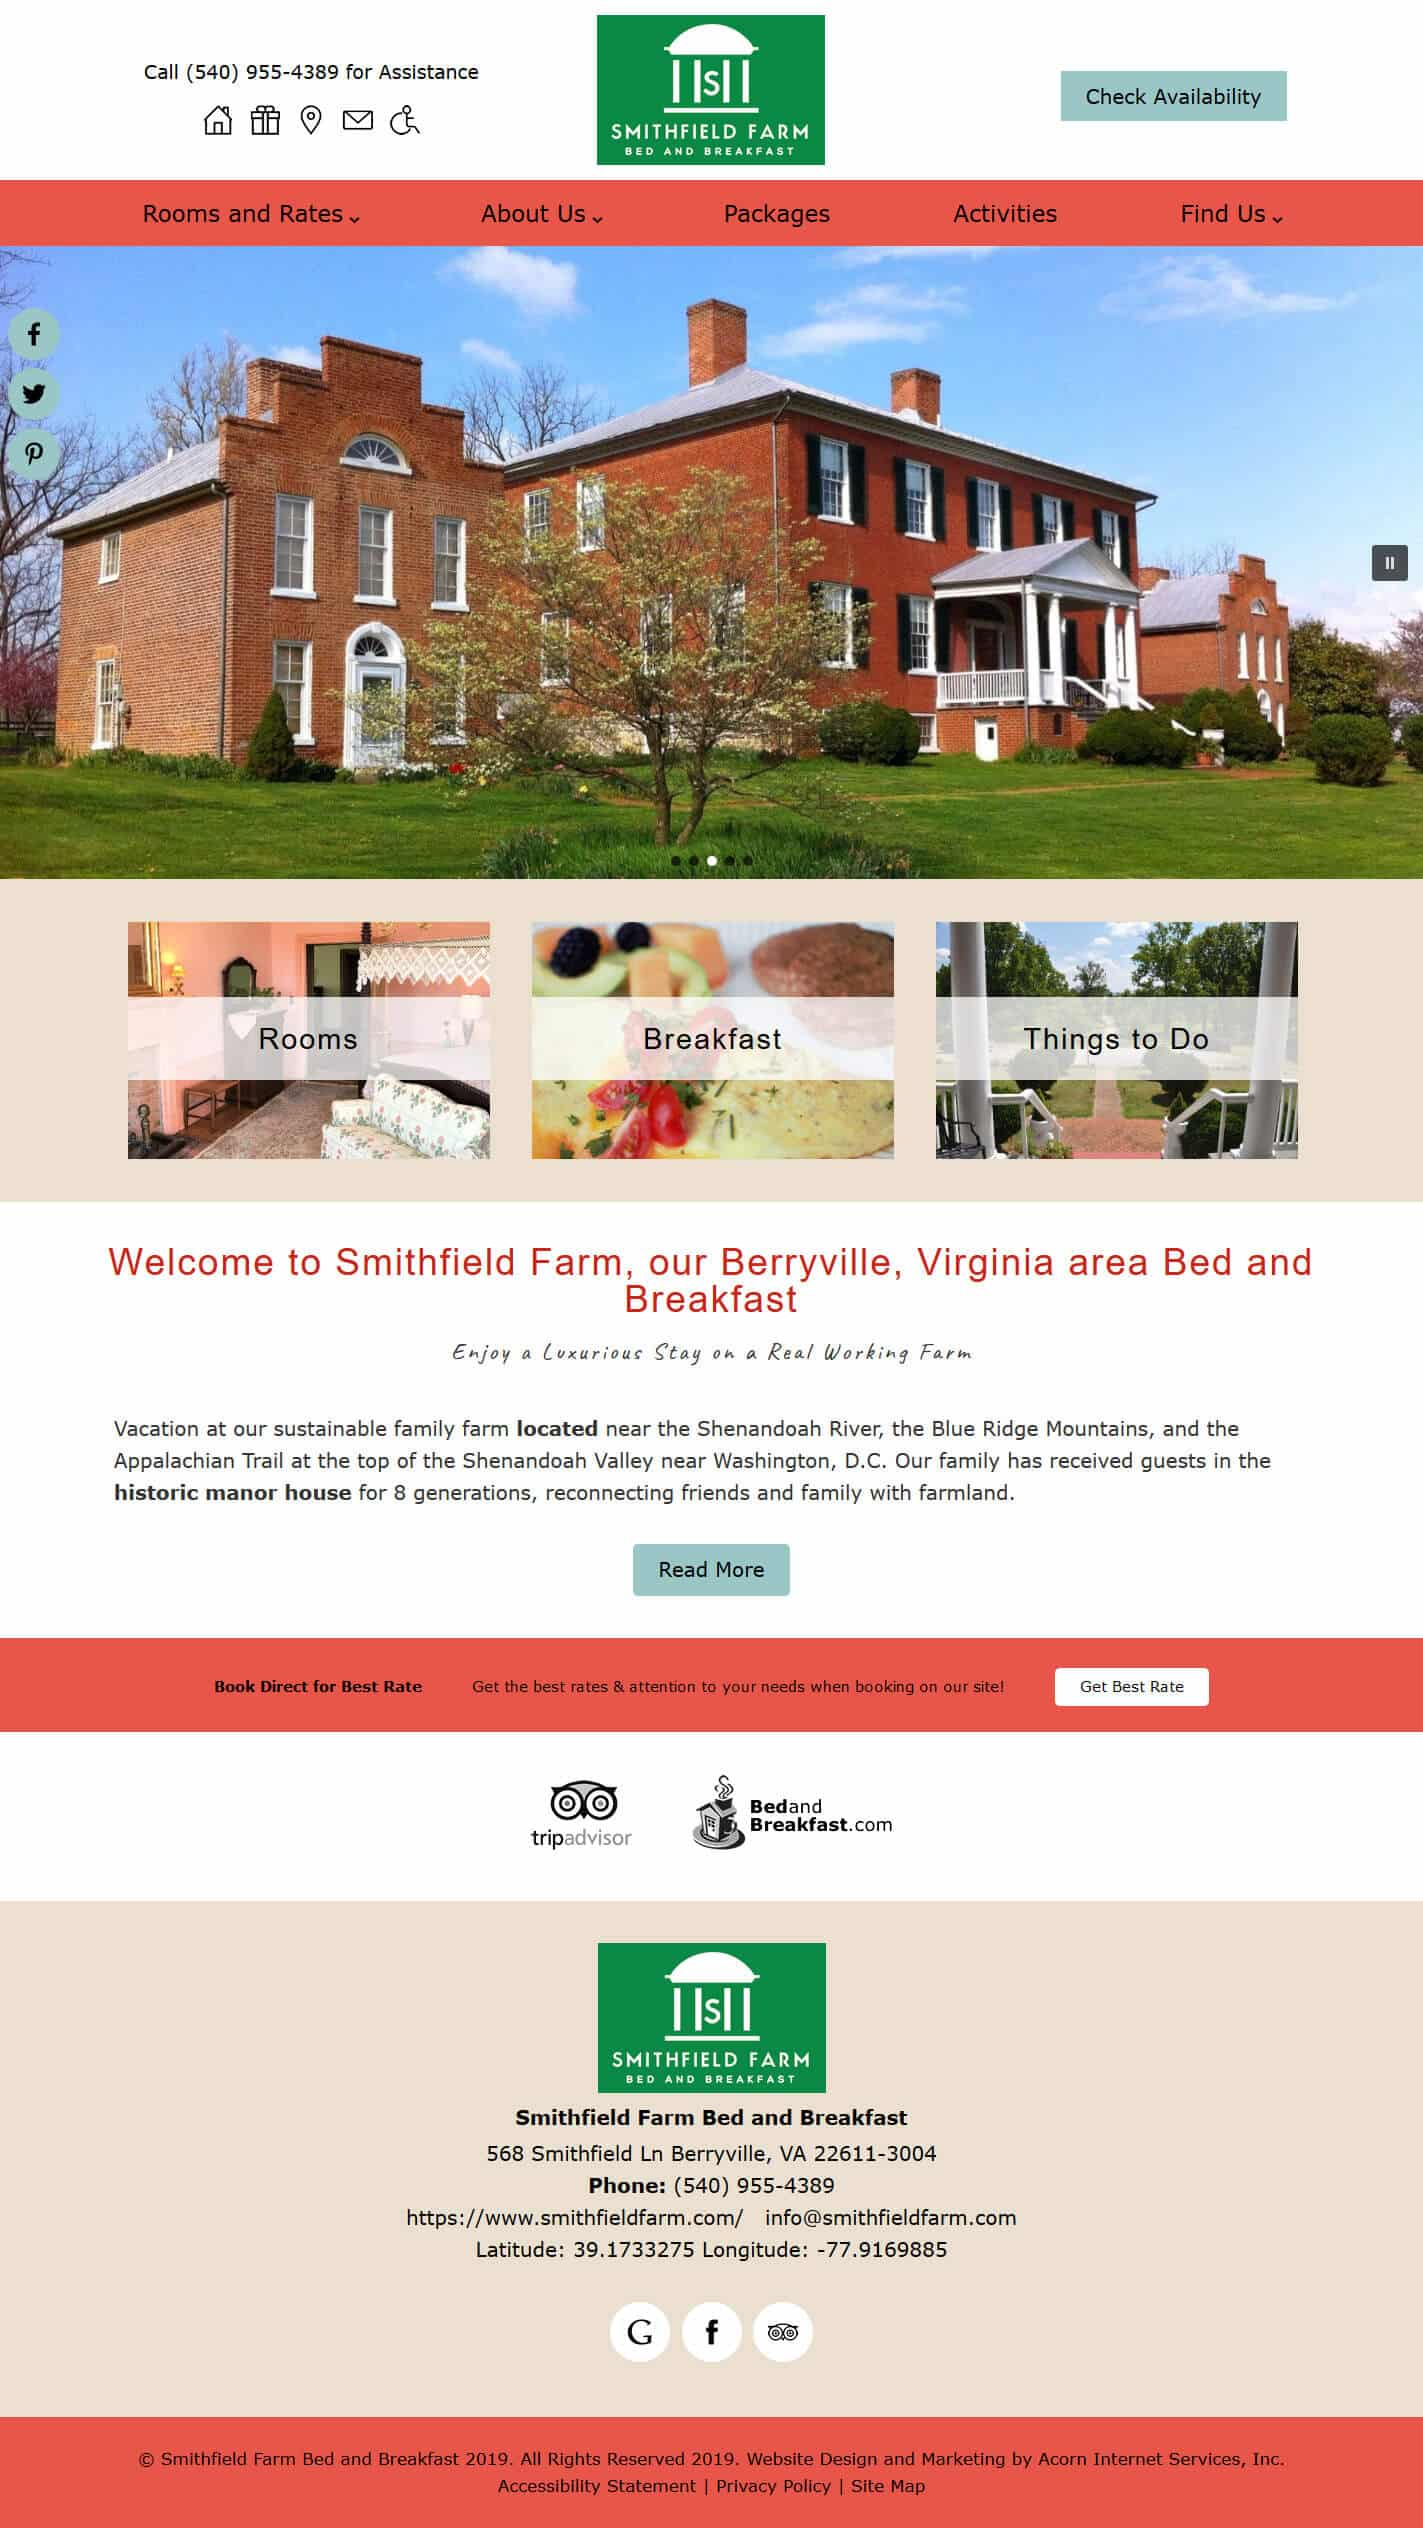 Smithfield Farm Bed and Breakfast website home page